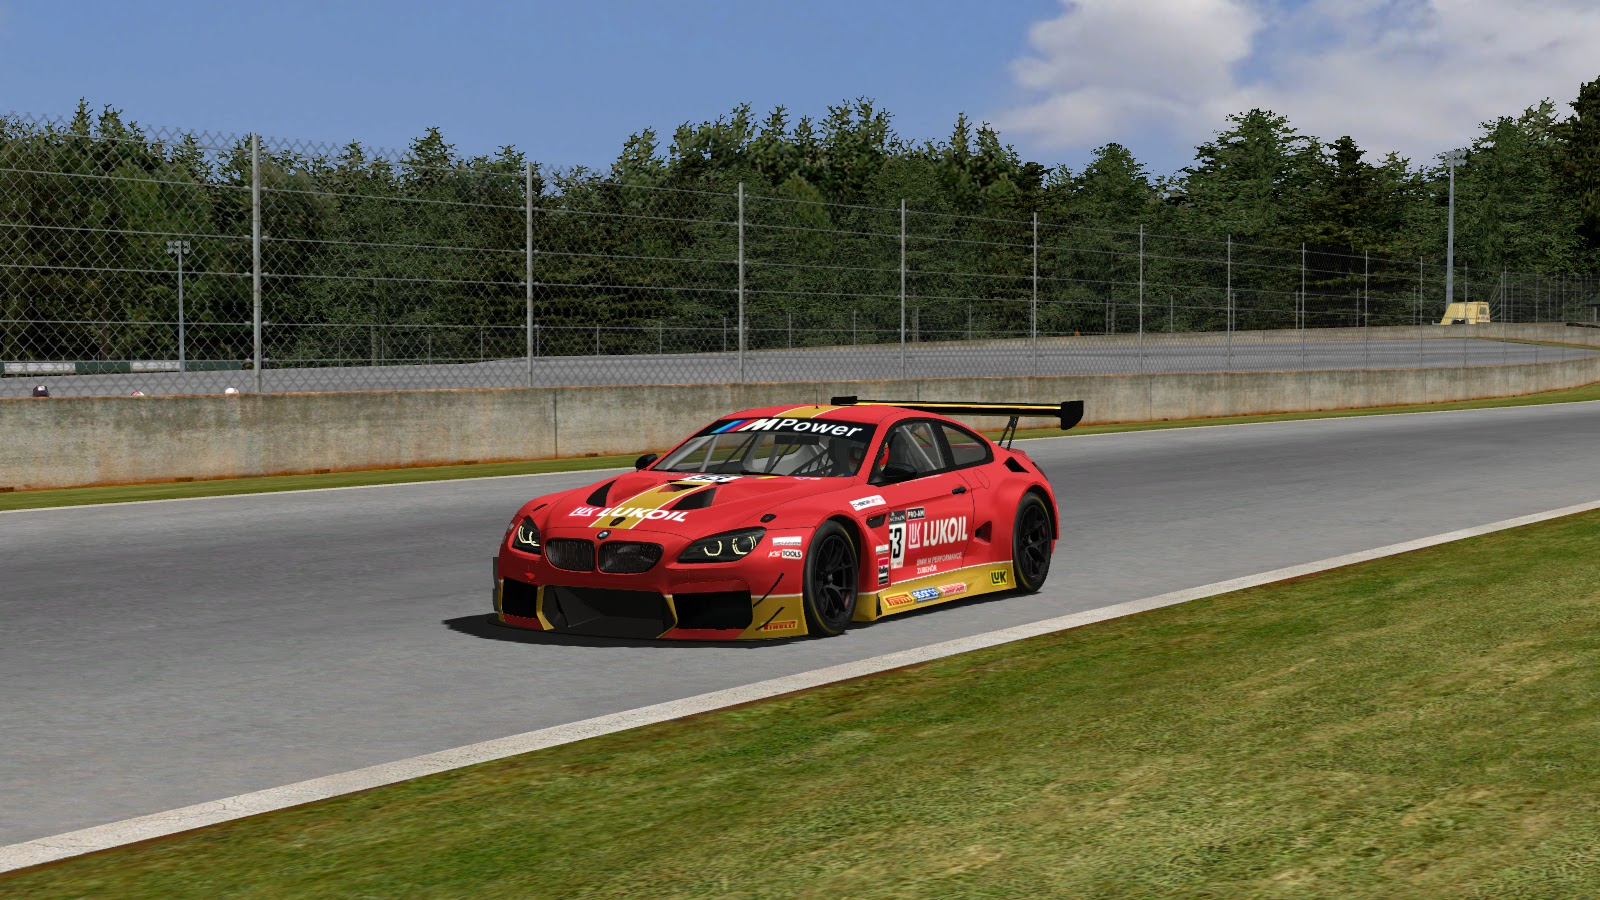 oldspalover gtr2 gtl and ets2 downloads my skin for the bmw m6 gt3 mod for eec mod. Black Bedroom Furniture Sets. Home Design Ideas